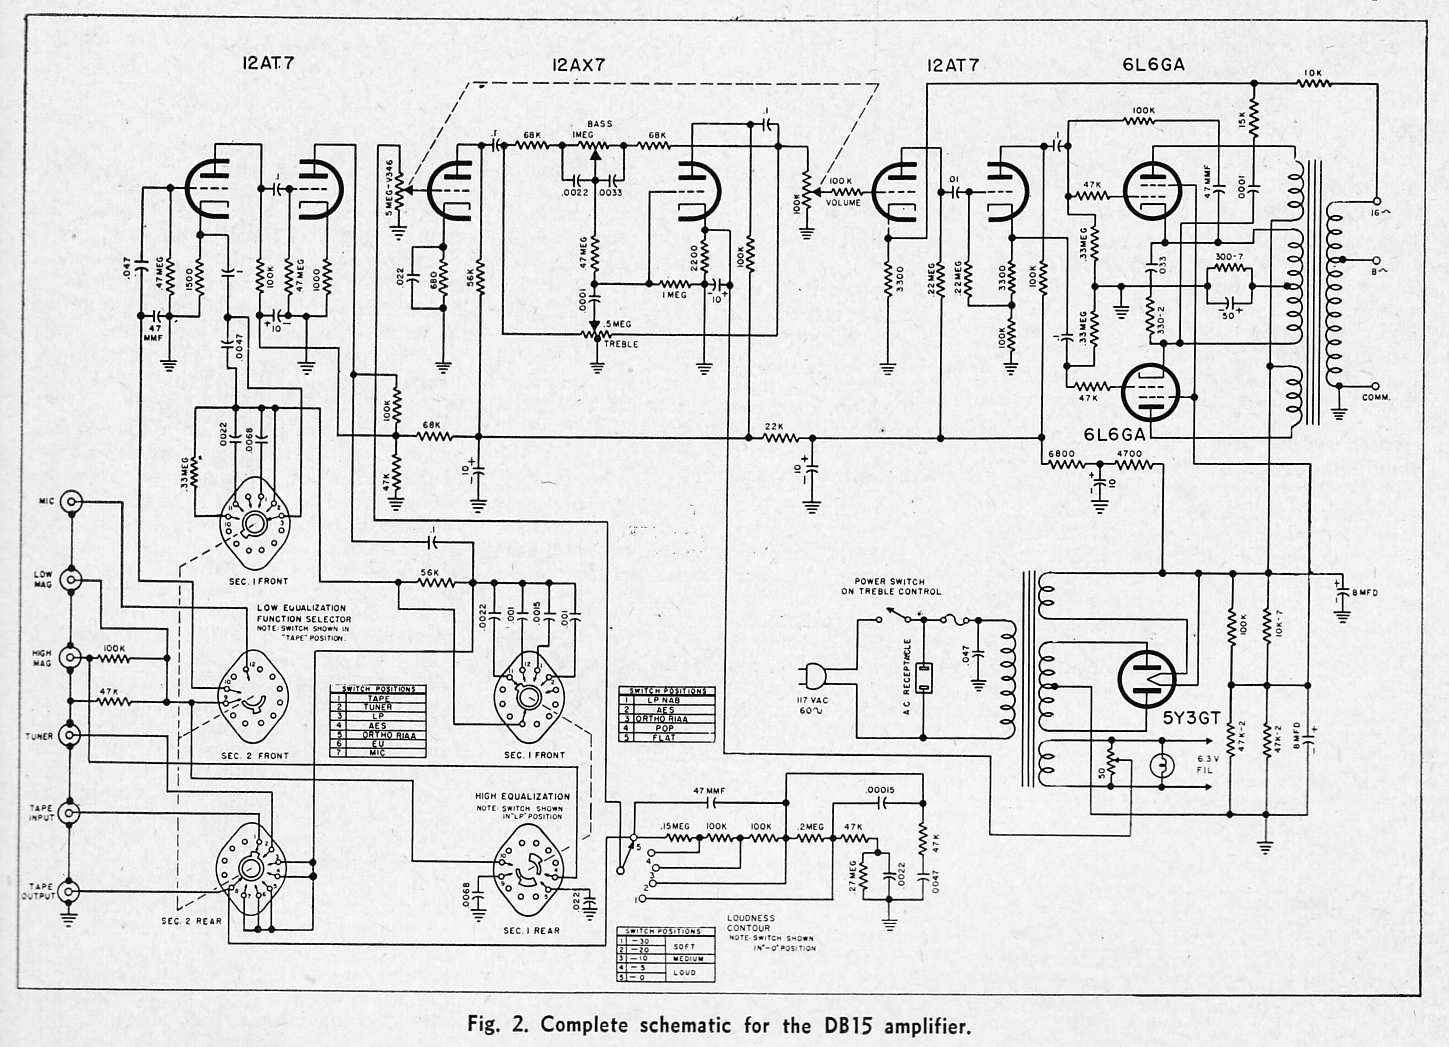 Amplifier Schematics Wiring Library Tda2040 Car Stereo Circuit Diagram Bogen Db15 Schematic